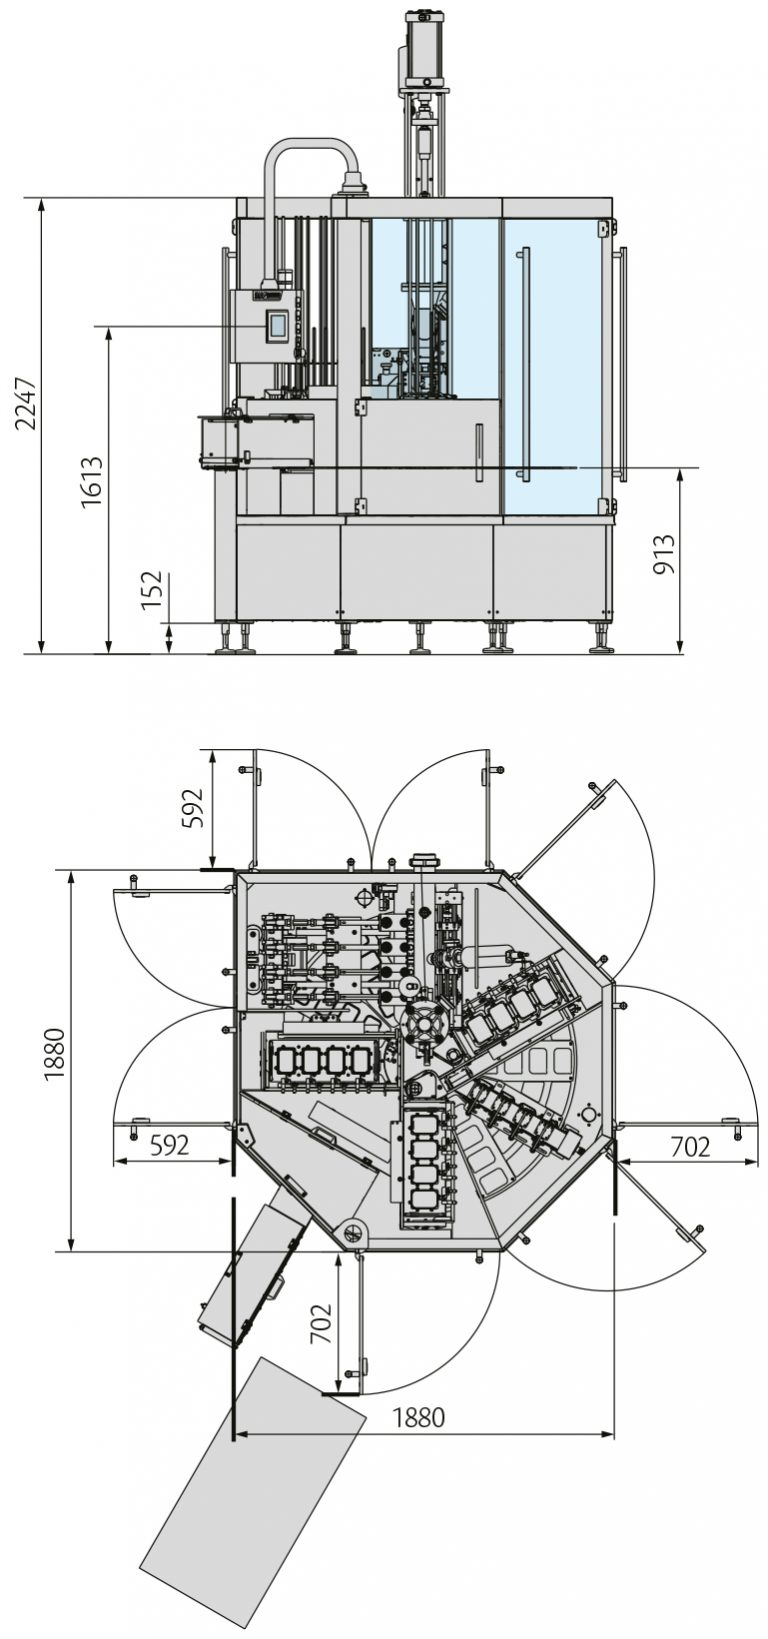 GYRO CUP Layout